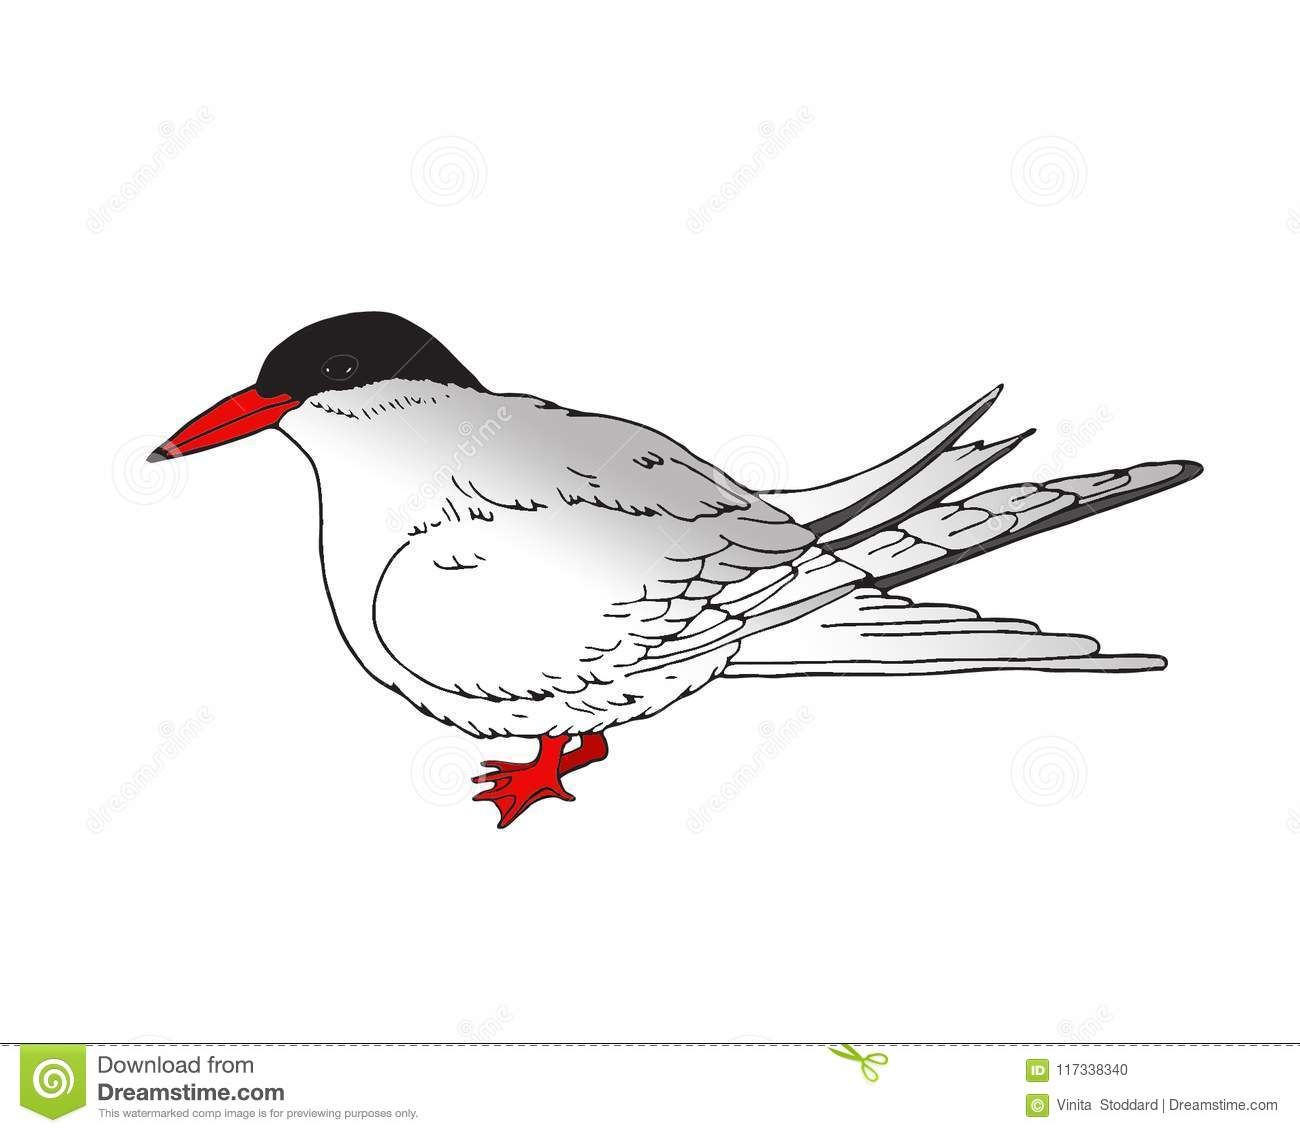 Arctic tern clipart picture library download Detailed Illustration Of An Arctic Tern Stock Illustration ... picture library download